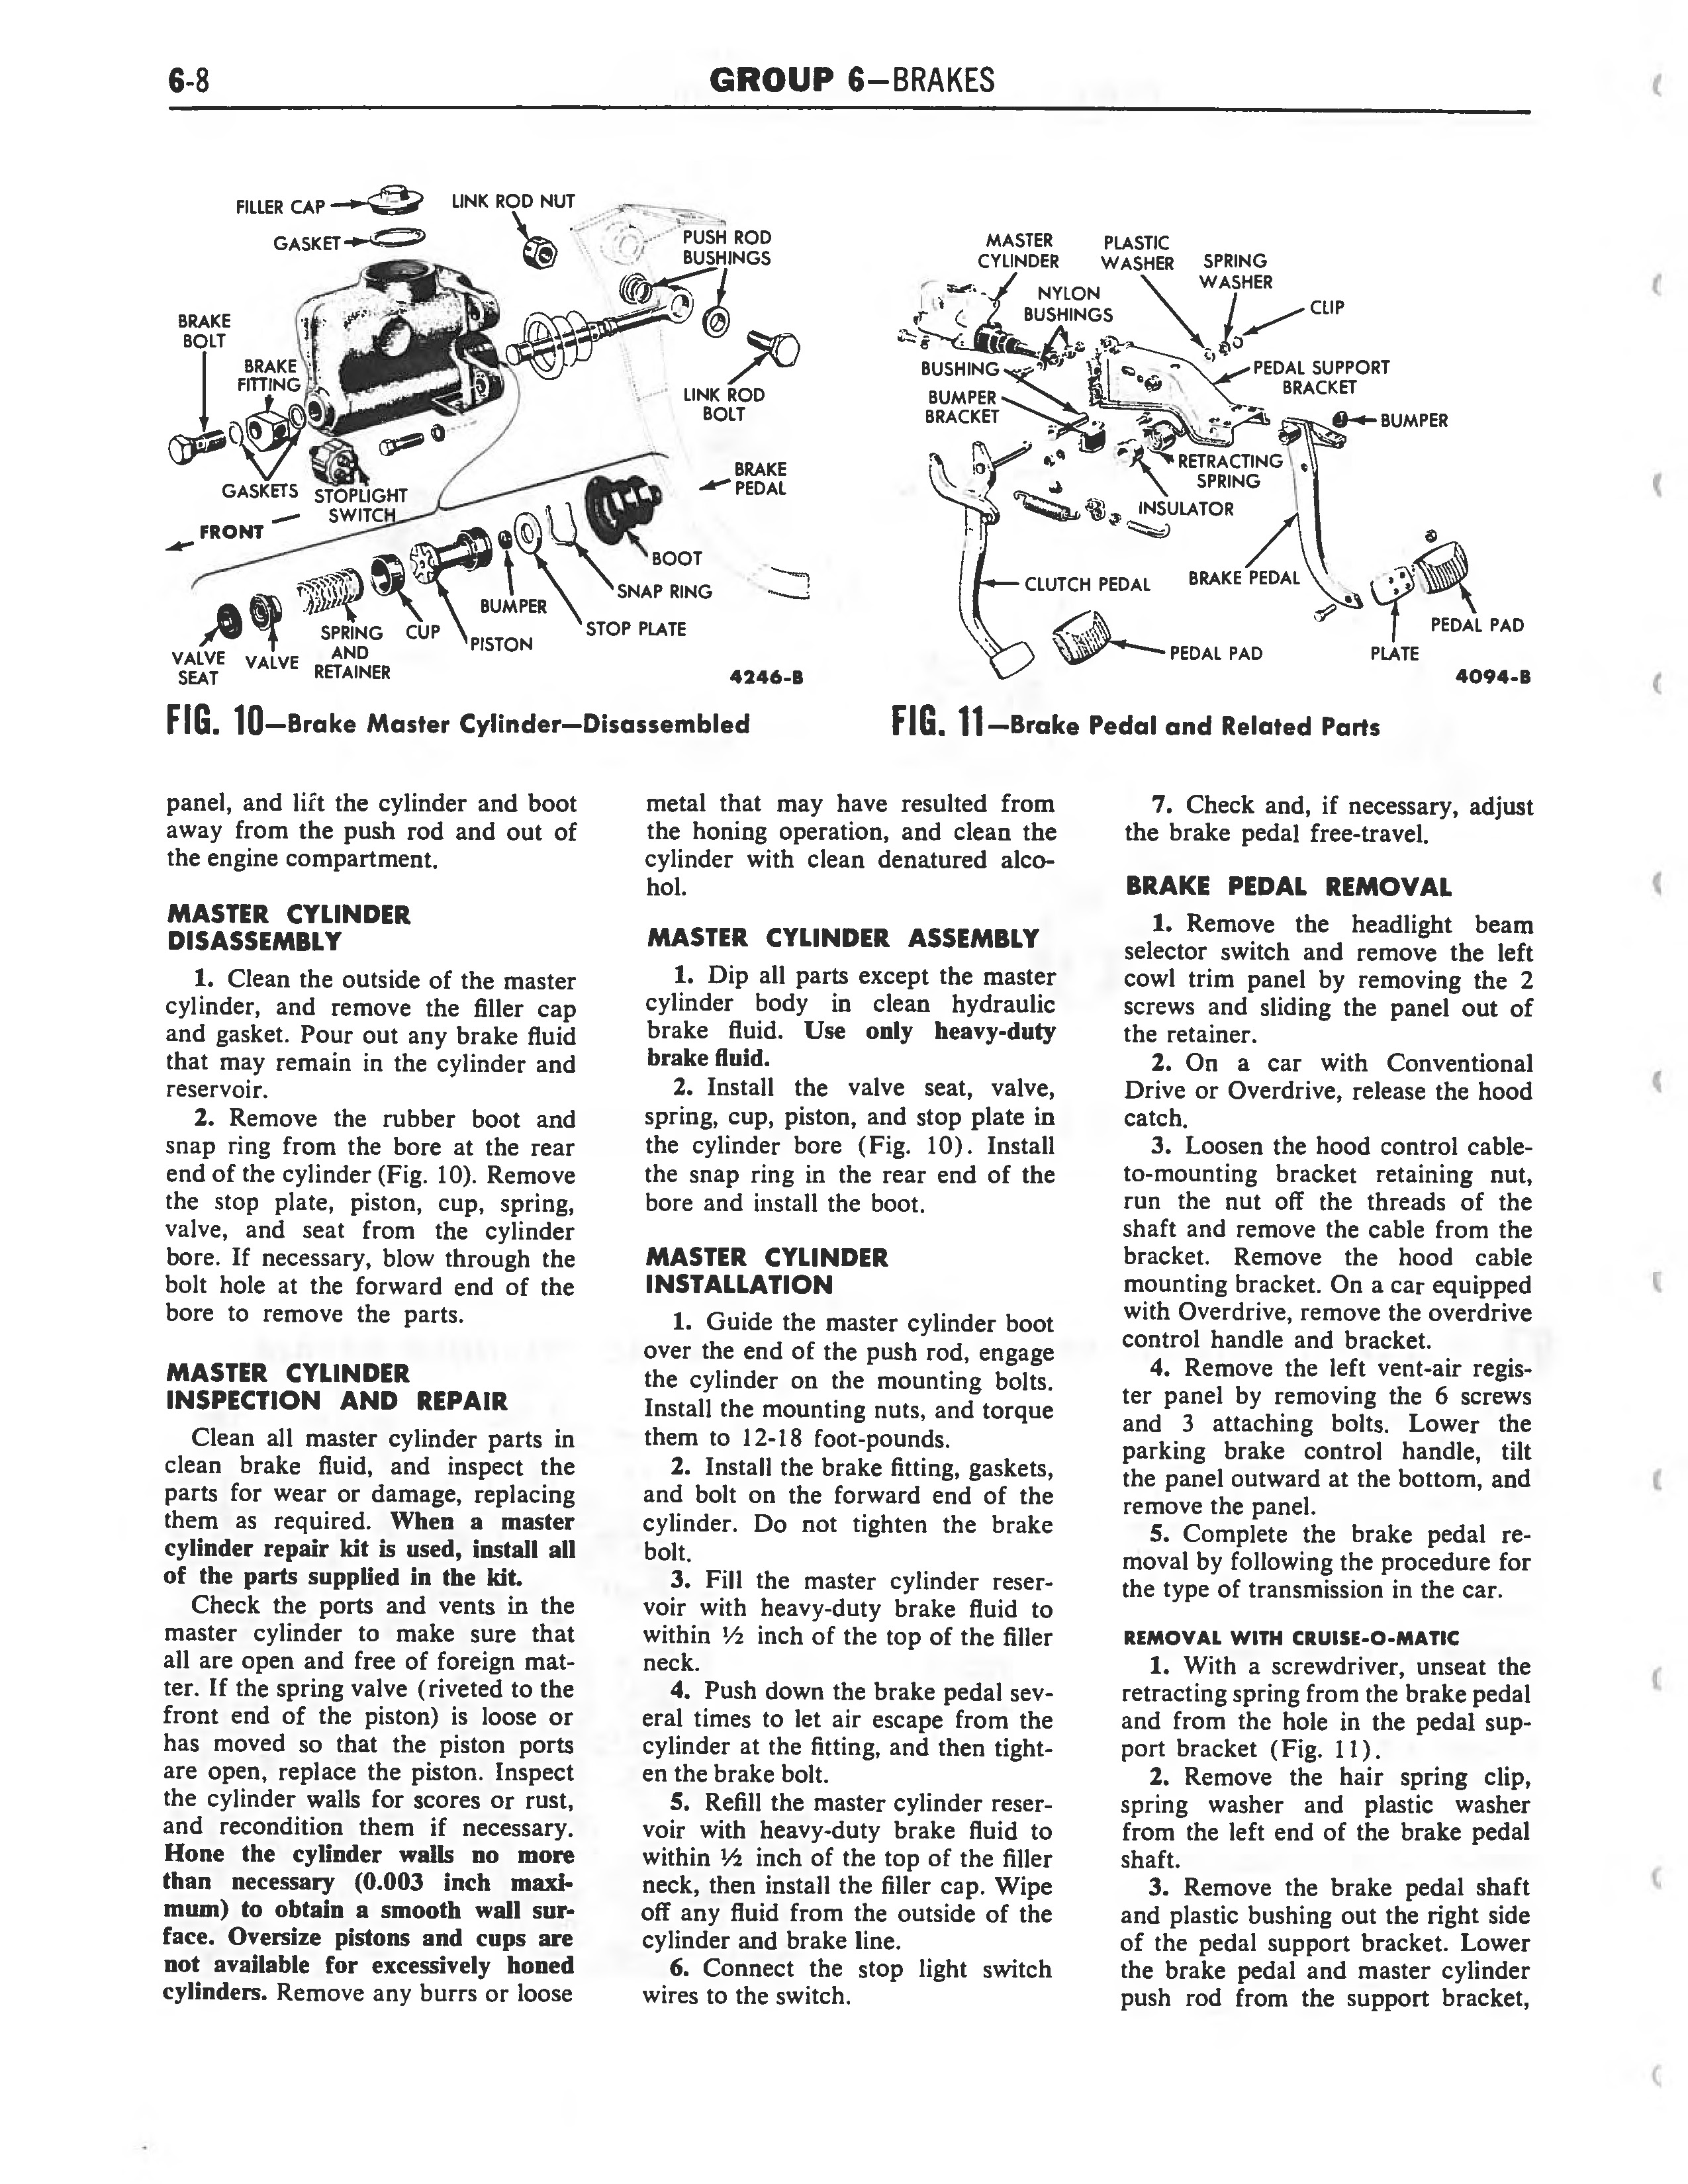 1958 Ford Thunderbird Shop Manual page 228 of 360